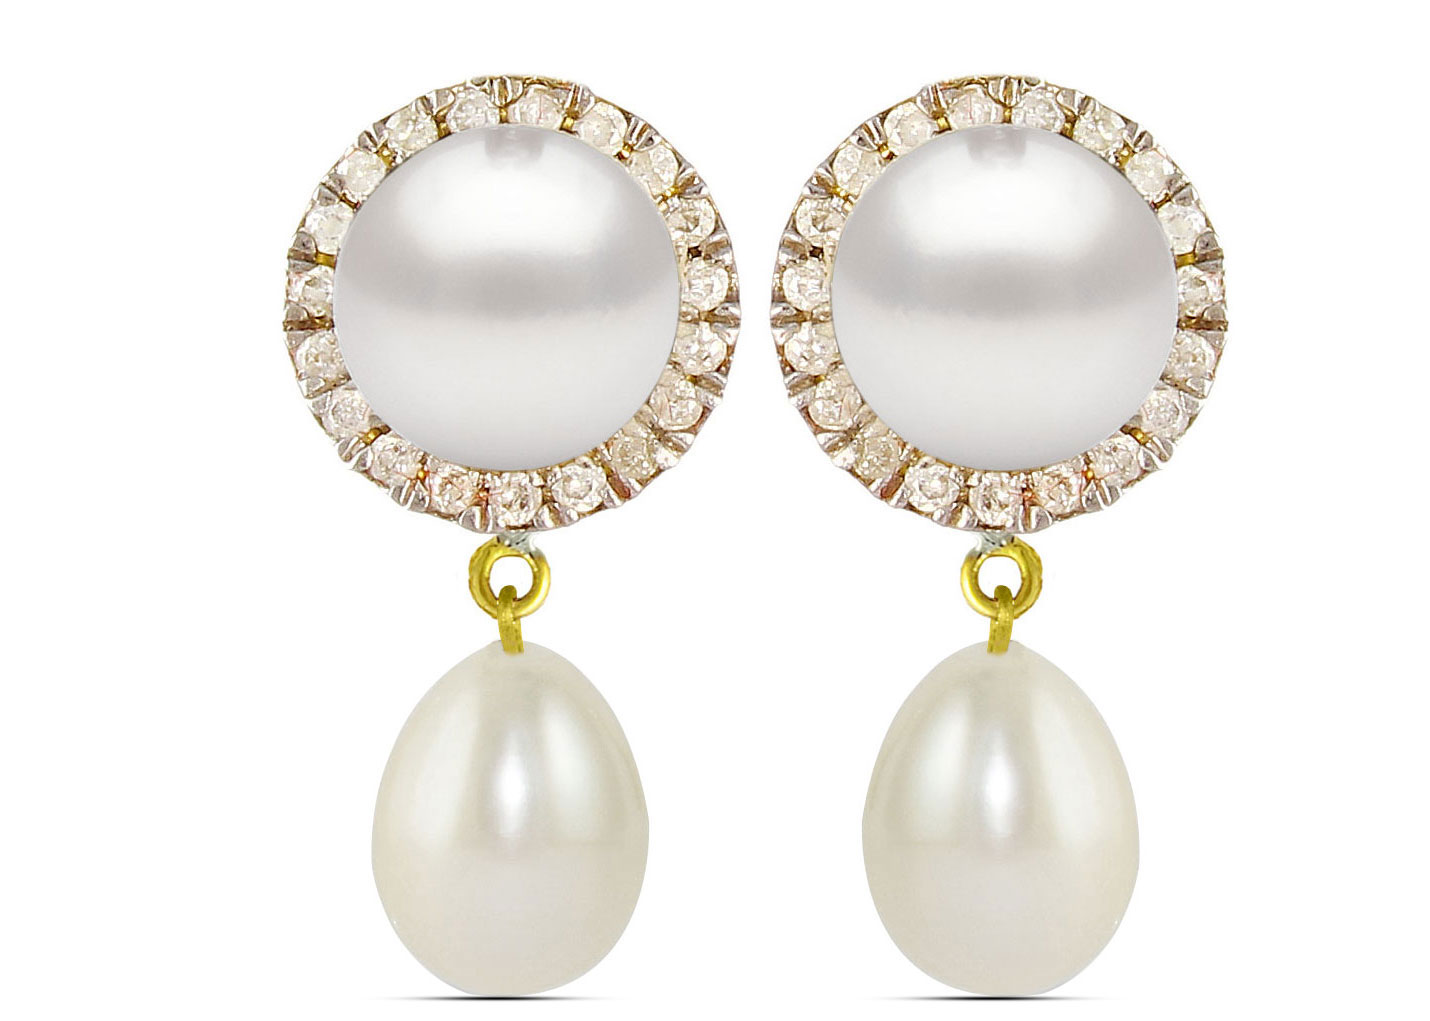 Vera Perla 18K Solid Gold 0.20ct Genuine Diamonds and 6-7 mm White Pearl Earrings